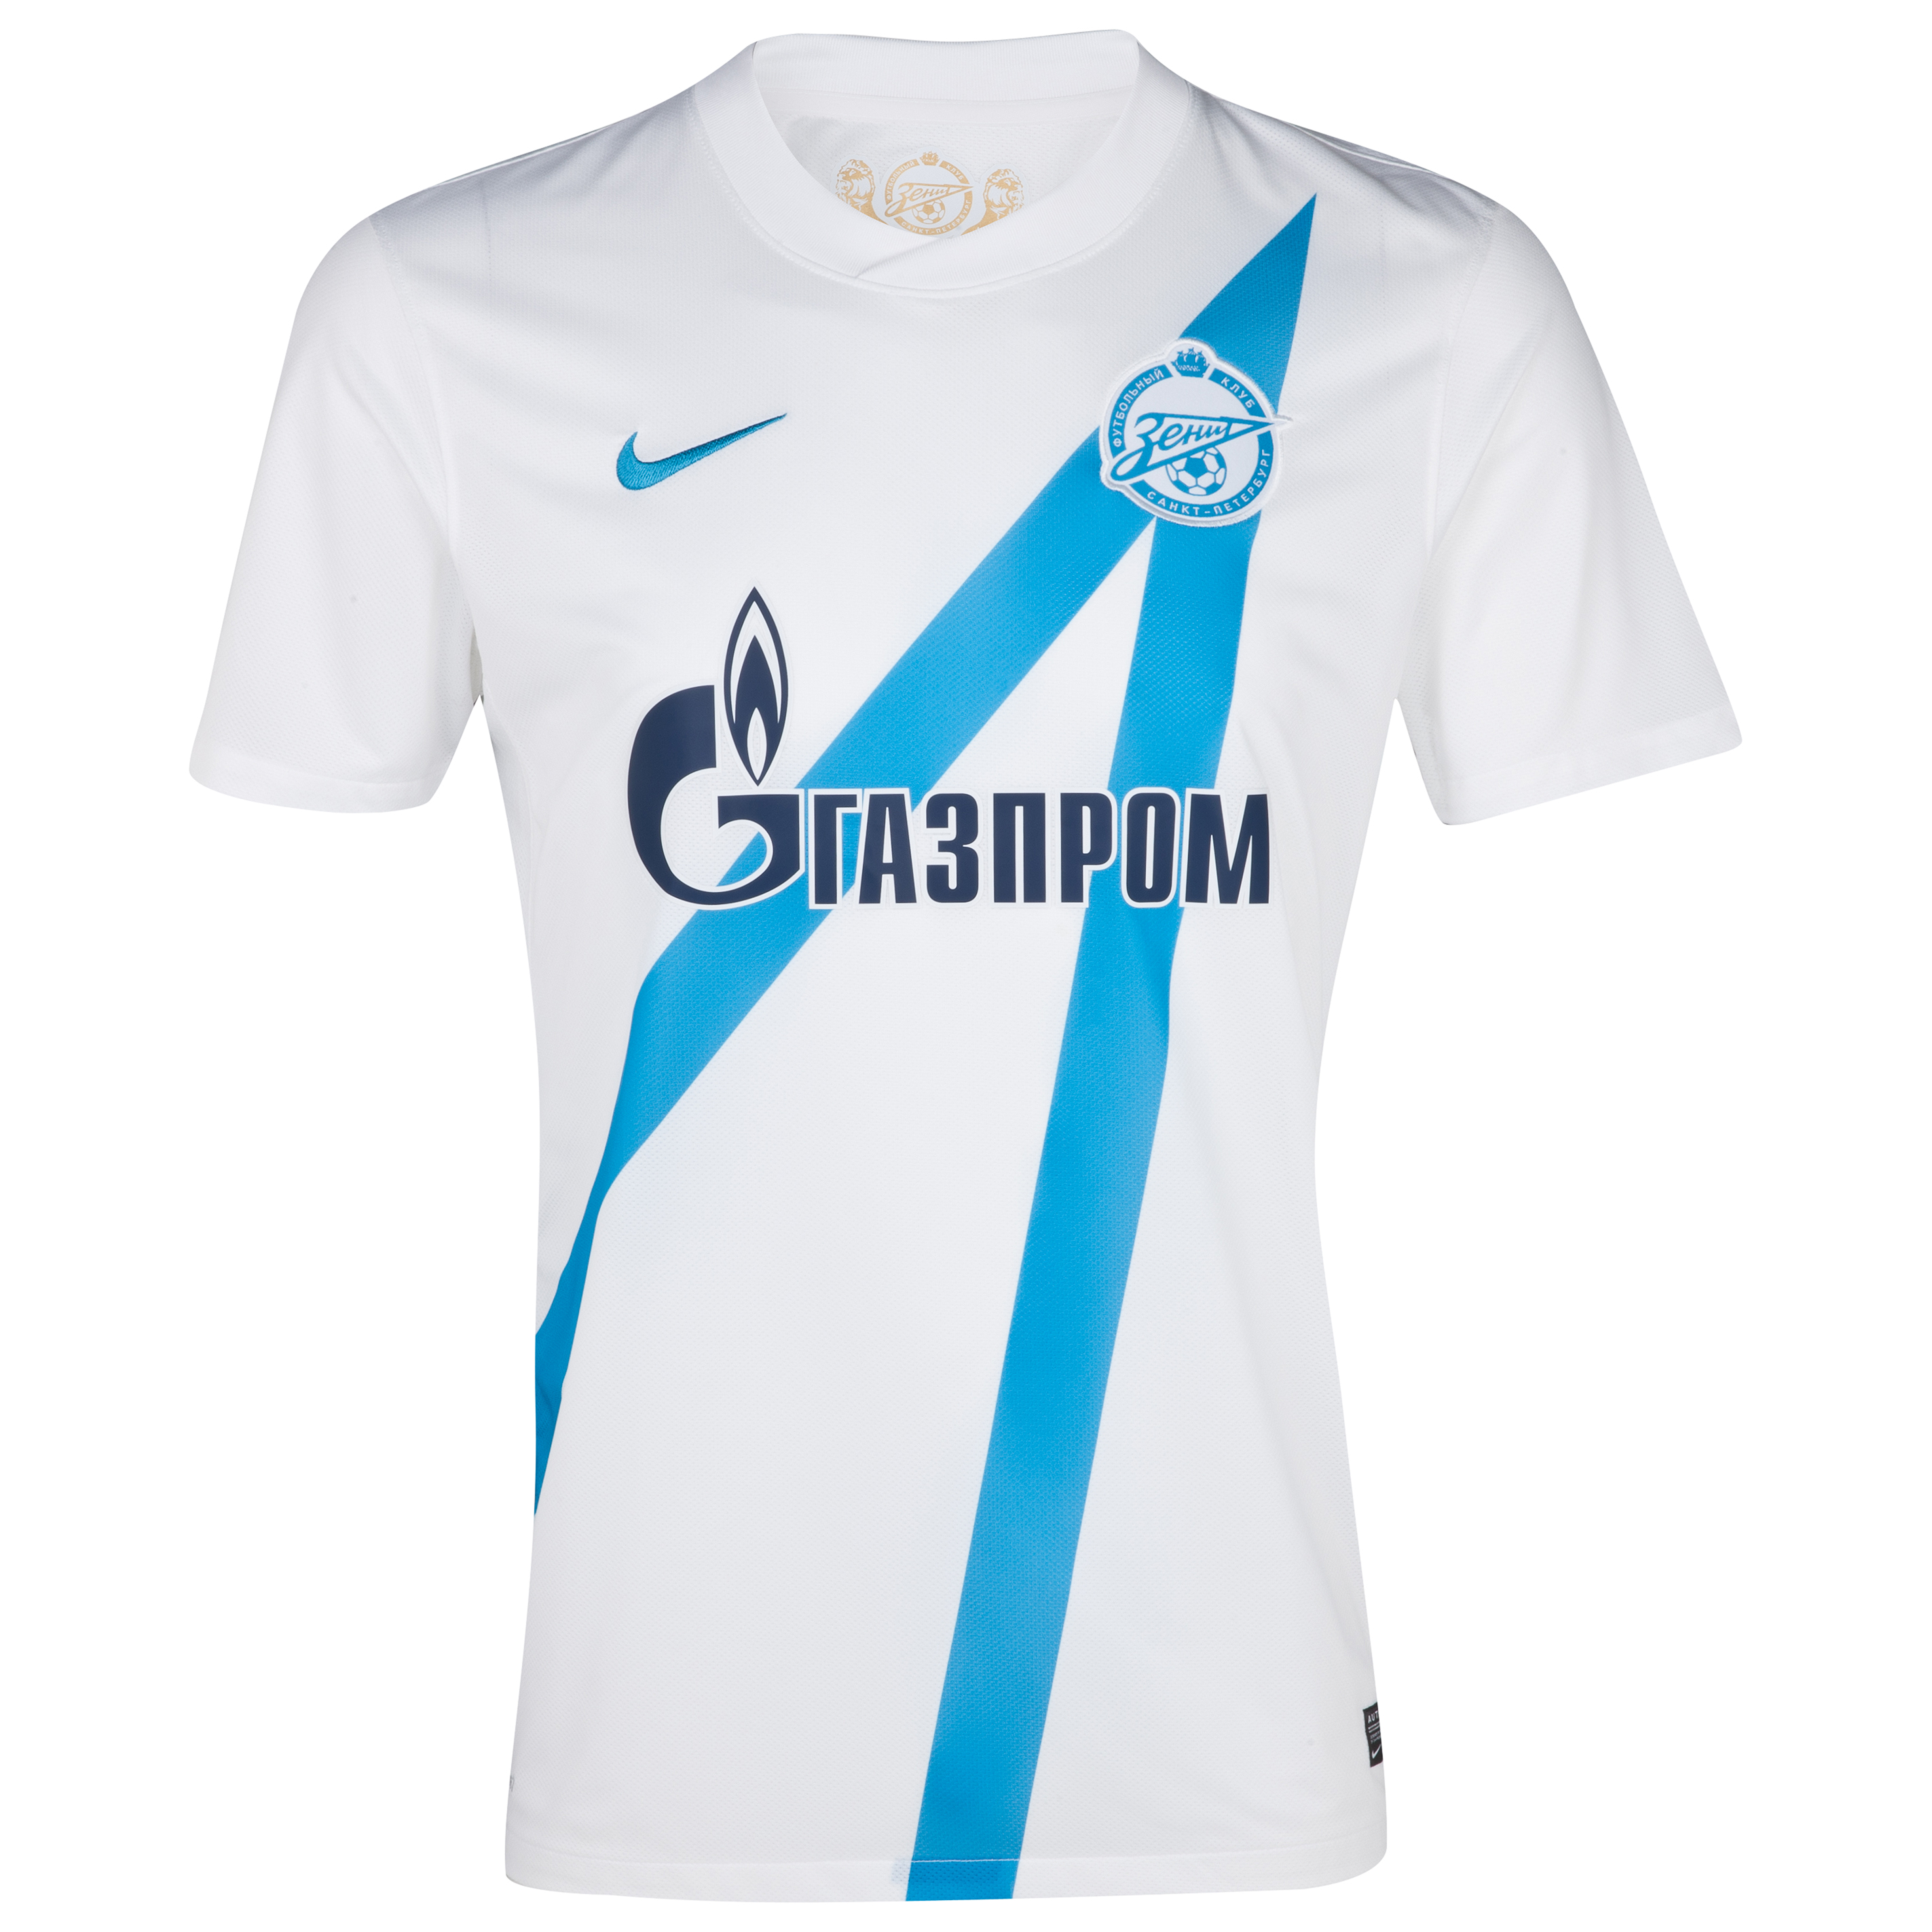 Zenit St. Petersburg 2012/13 Away Shirt - Football White/Laser Blue/Laser Blue